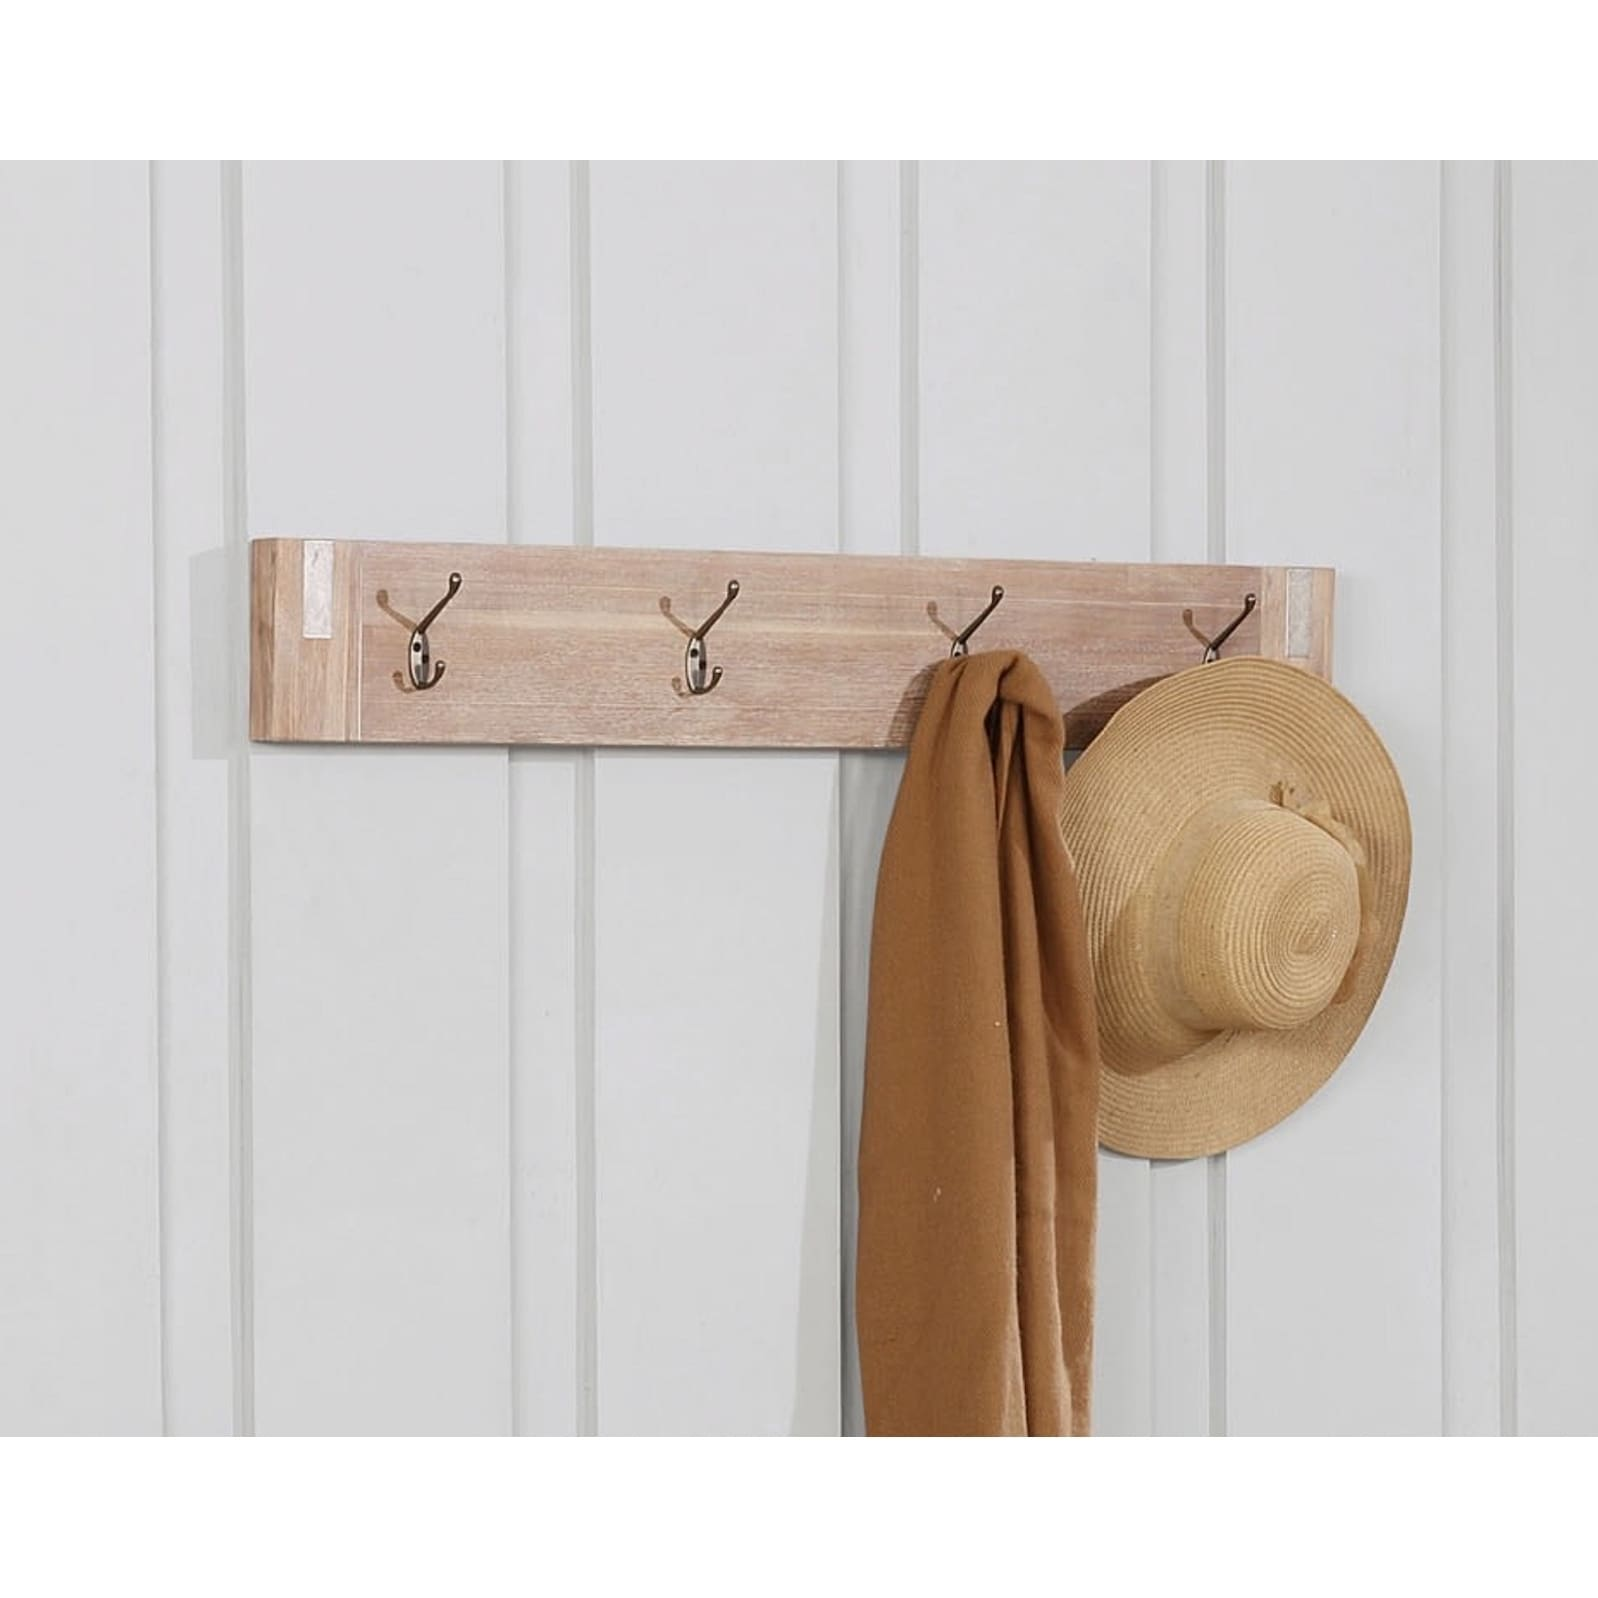 Woodstock Acacia Wood with Metal Inset Coat Hook, Brushed Driftwood